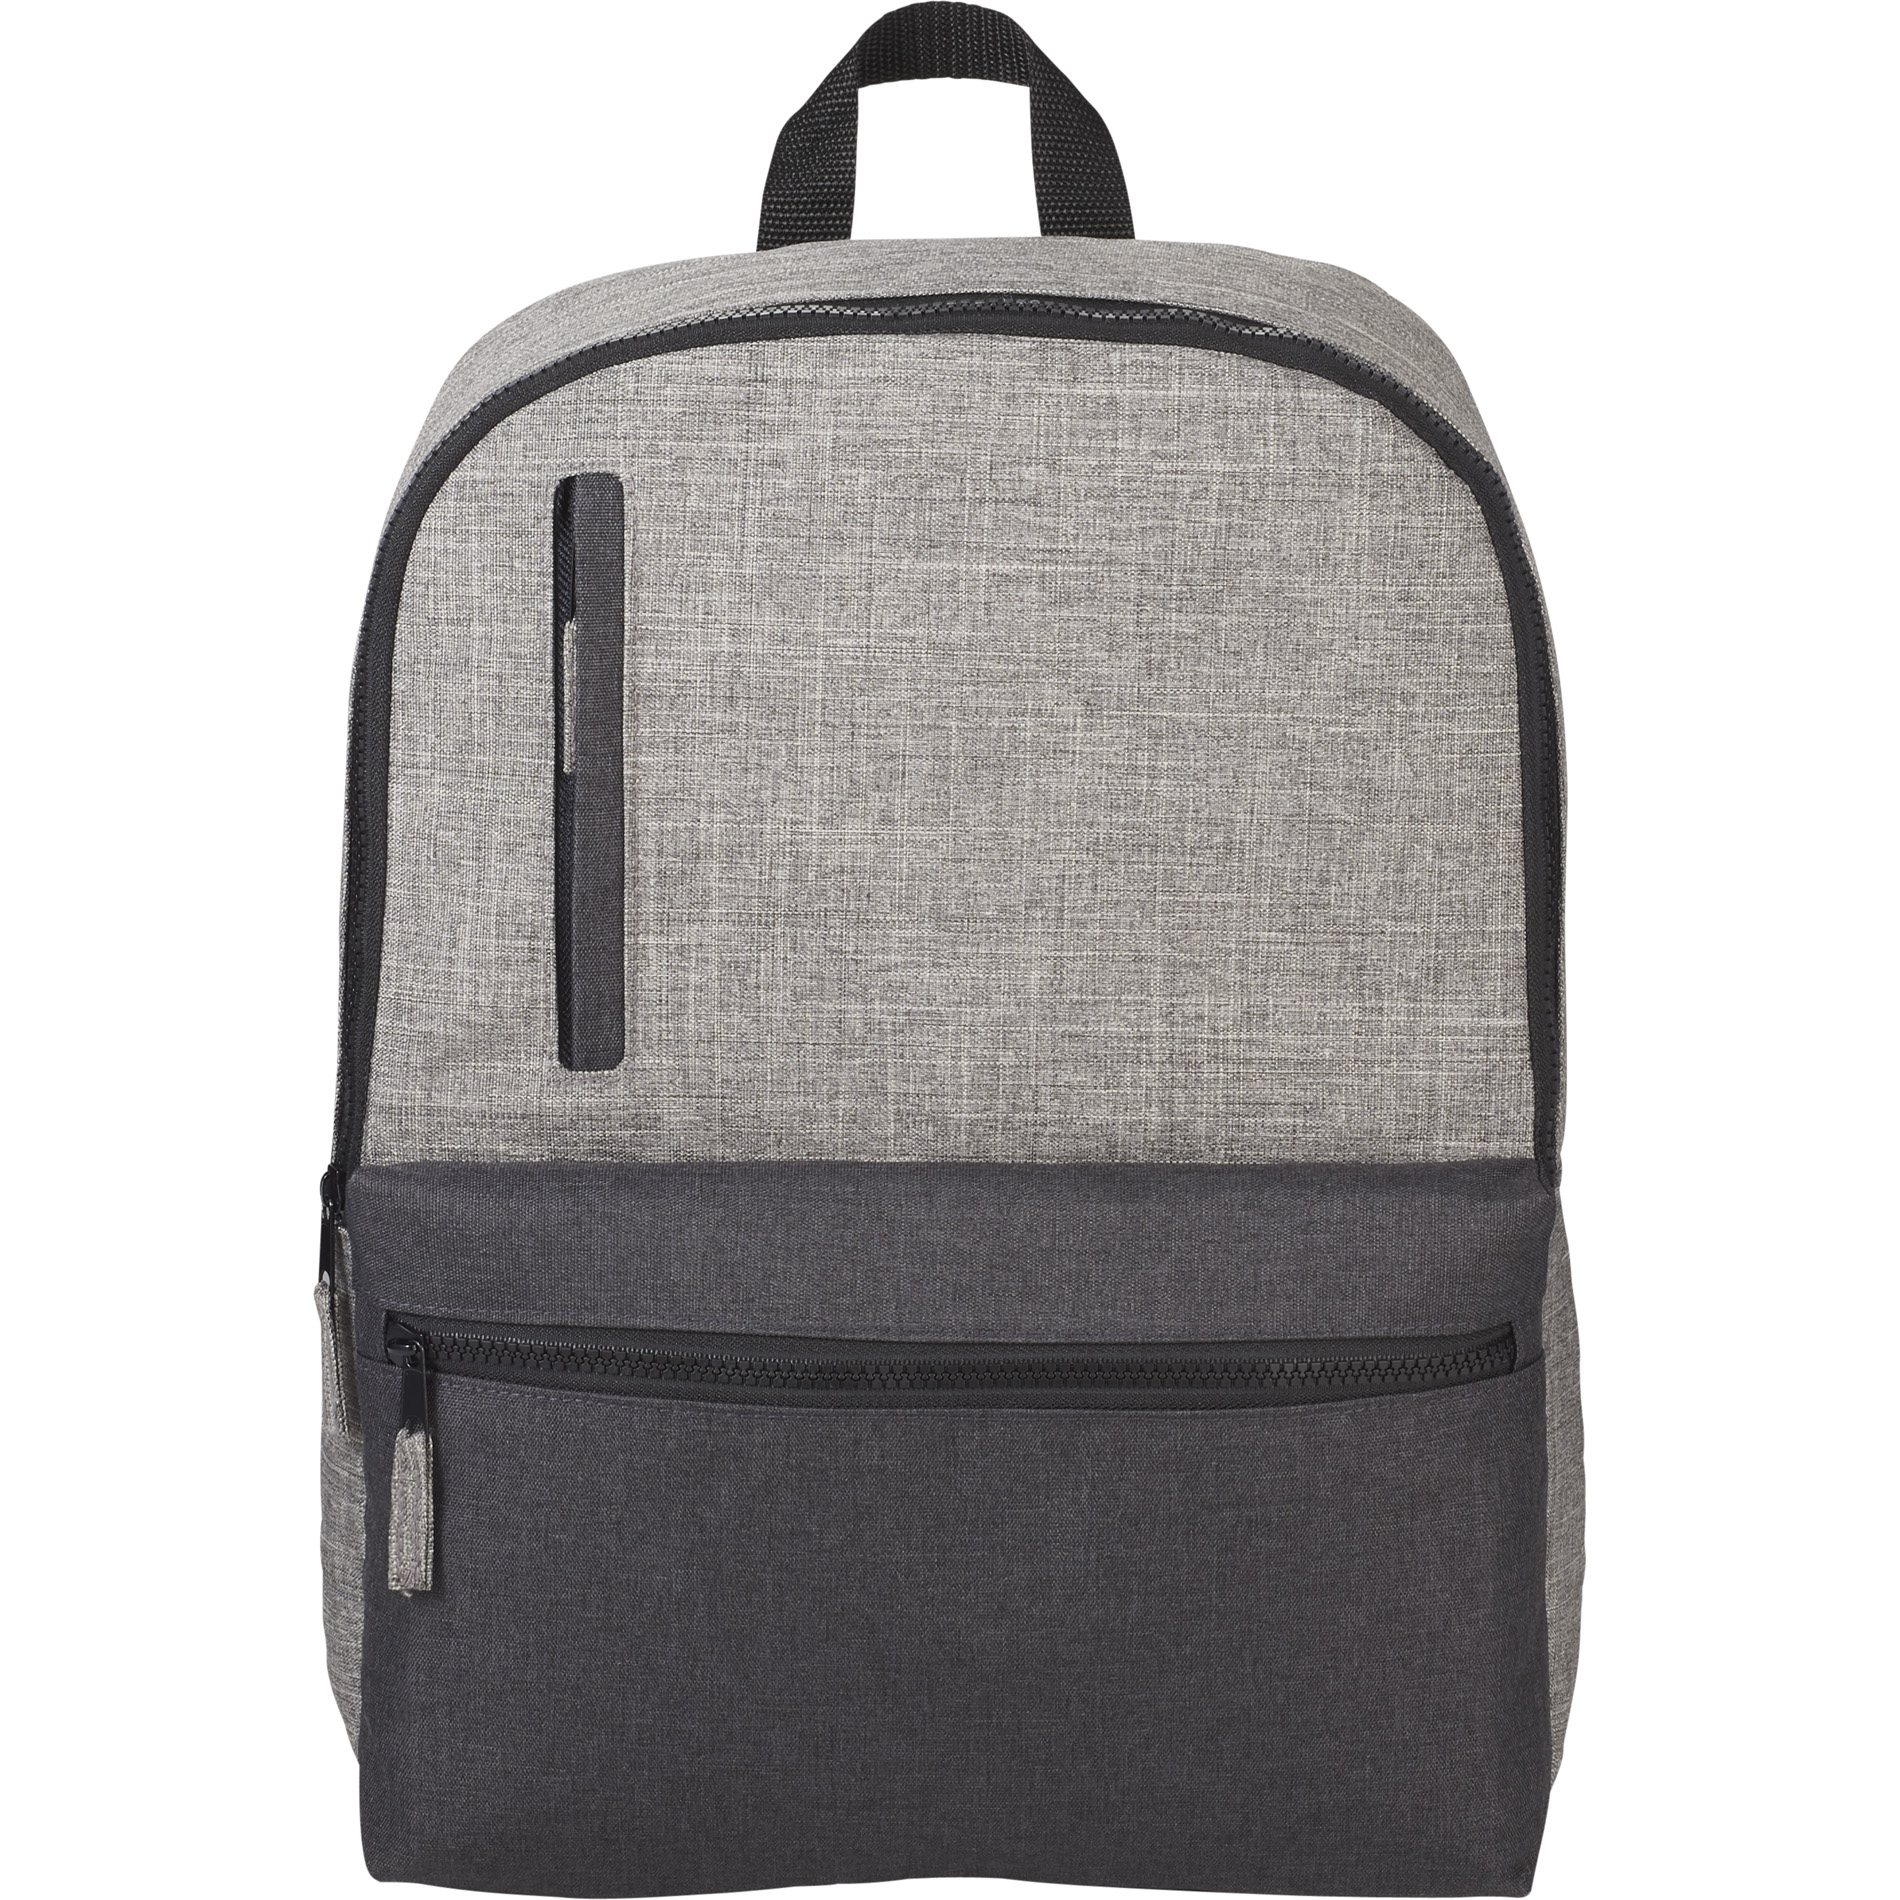 "Parkland 3001-70 - Reclaim Recycled 15"" Computer Backpack"